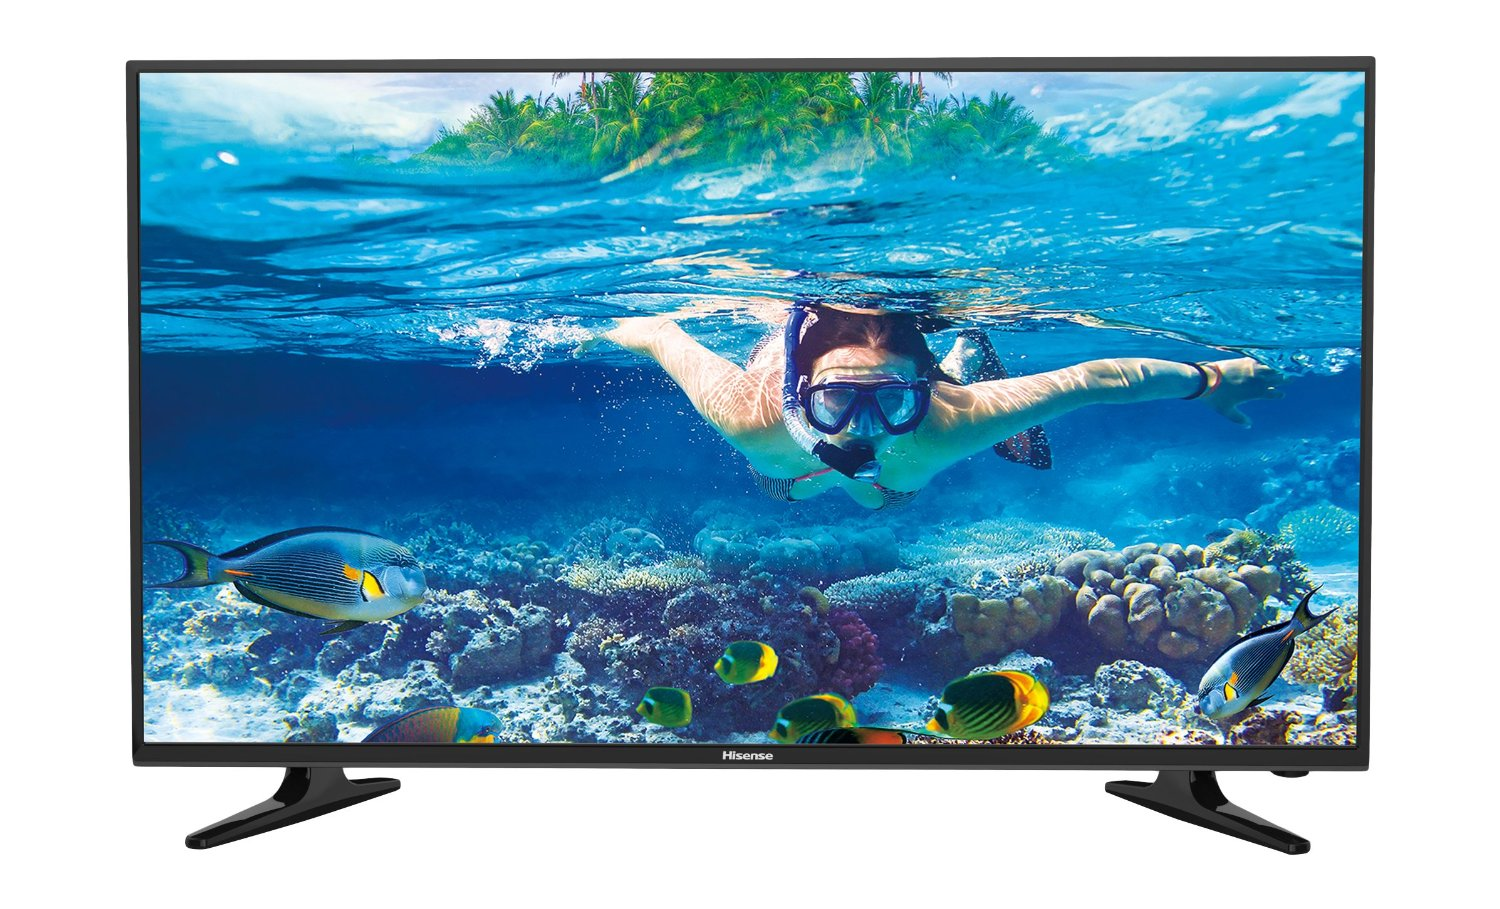 hisense lhd32d50ts 80cm 32 zoll led tv fernseher hd. Black Bedroom Furniture Sets. Home Design Ideas